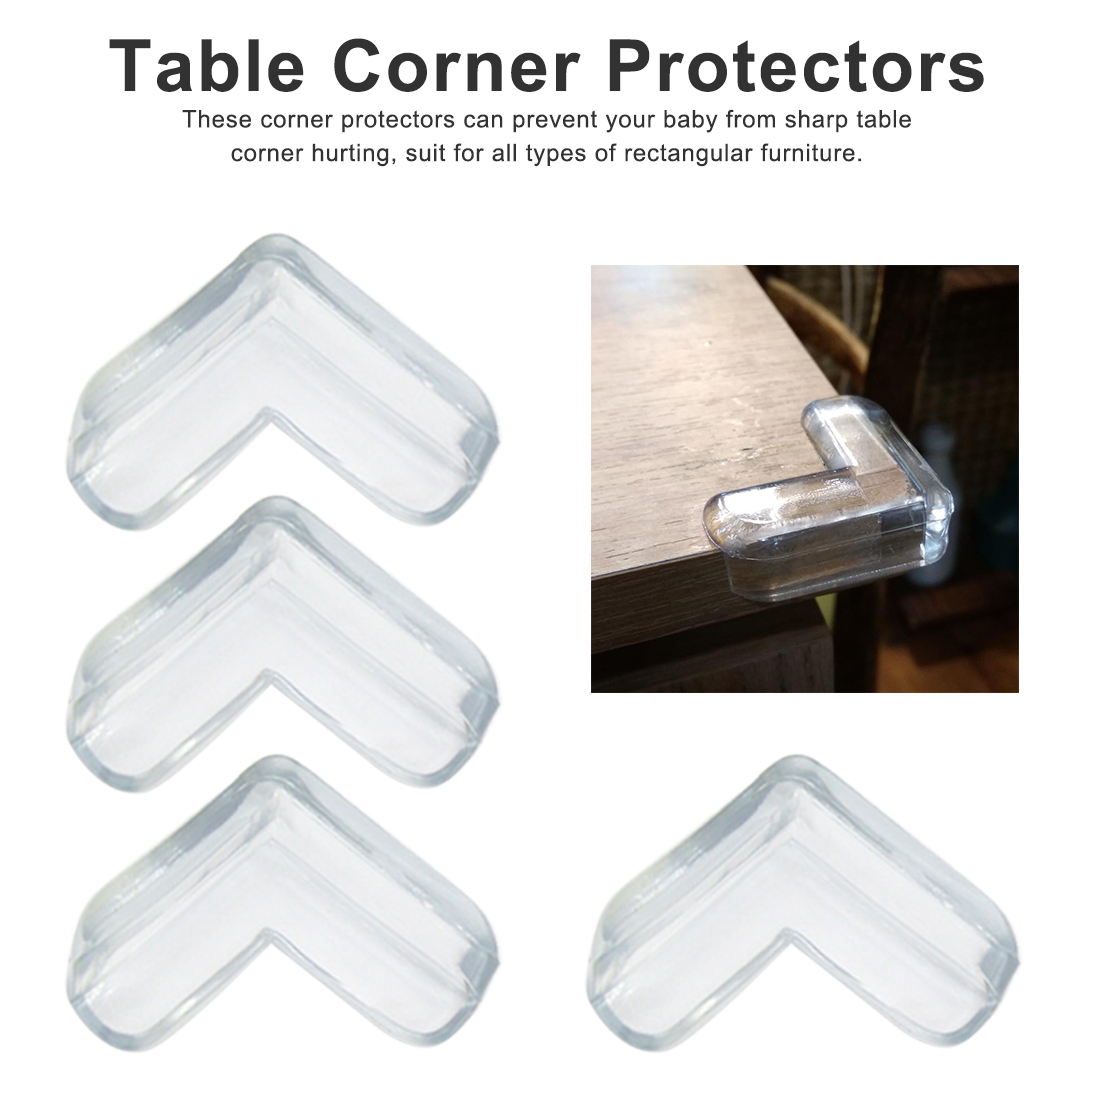 4pcs Kids Baby Safety Silicone Protector Table Corner Protection From Children Anticollision Edge Corners Guards Cover 4pcs Kids Baby Safety Silicone Protector Table Corner Protection From Children Anticollision Edge Corners Guards Cover